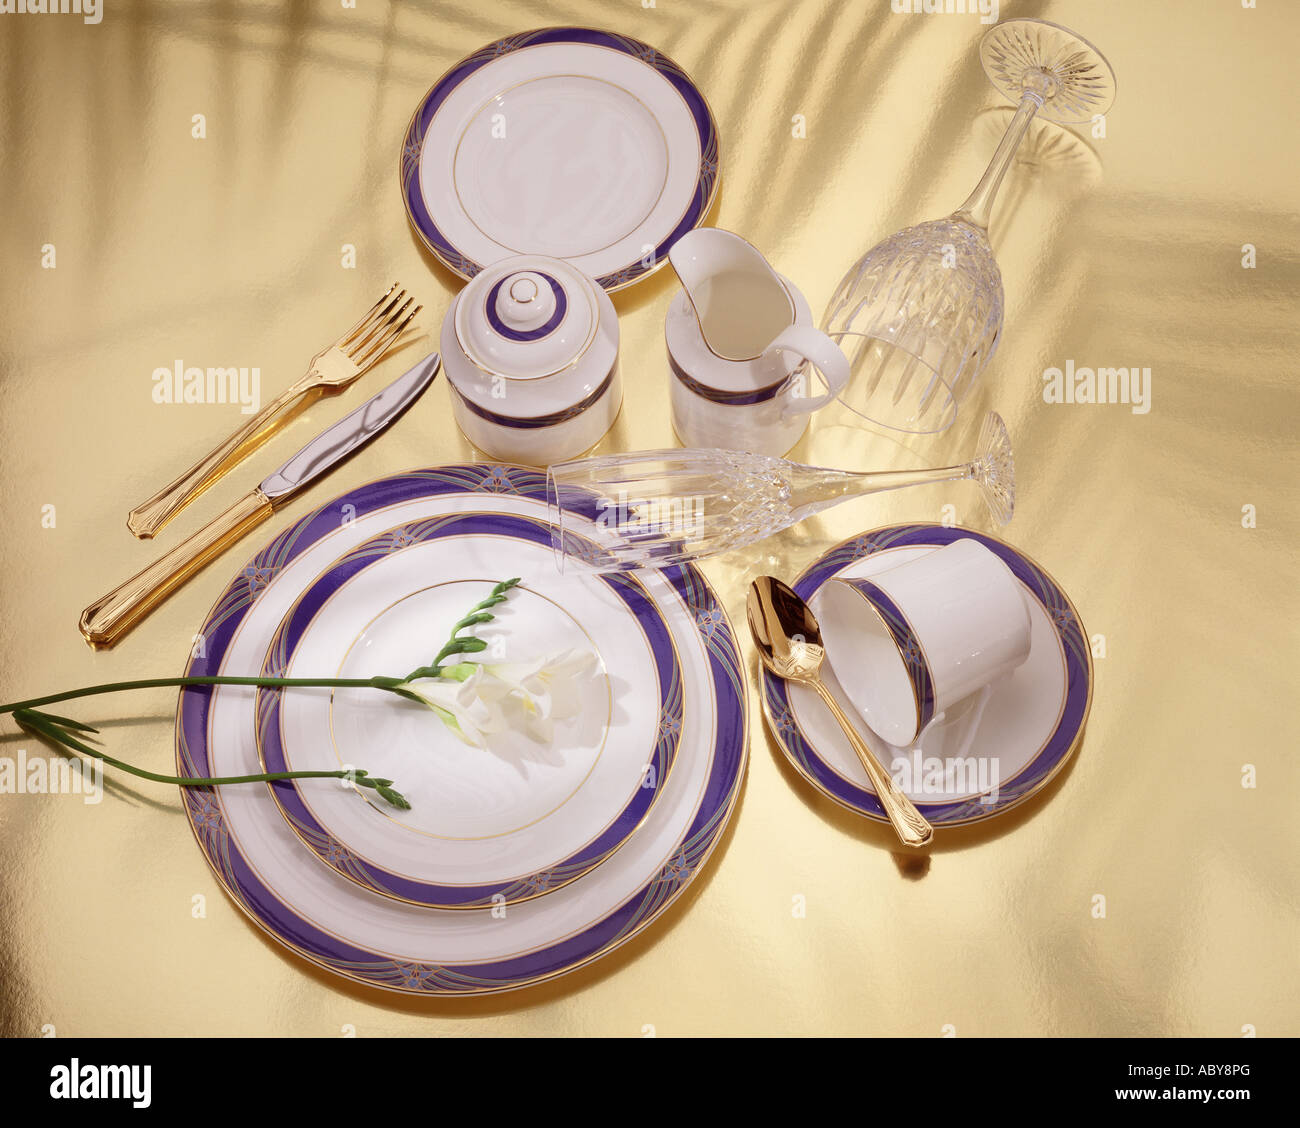 Formal dinner table setting - Stock Photo Formal Dinner Ware Place Table Setting Crystal Goblet Gold Knife Fork Spoon Cup Saucer Sugar Bowl Creamer Plates Holiday